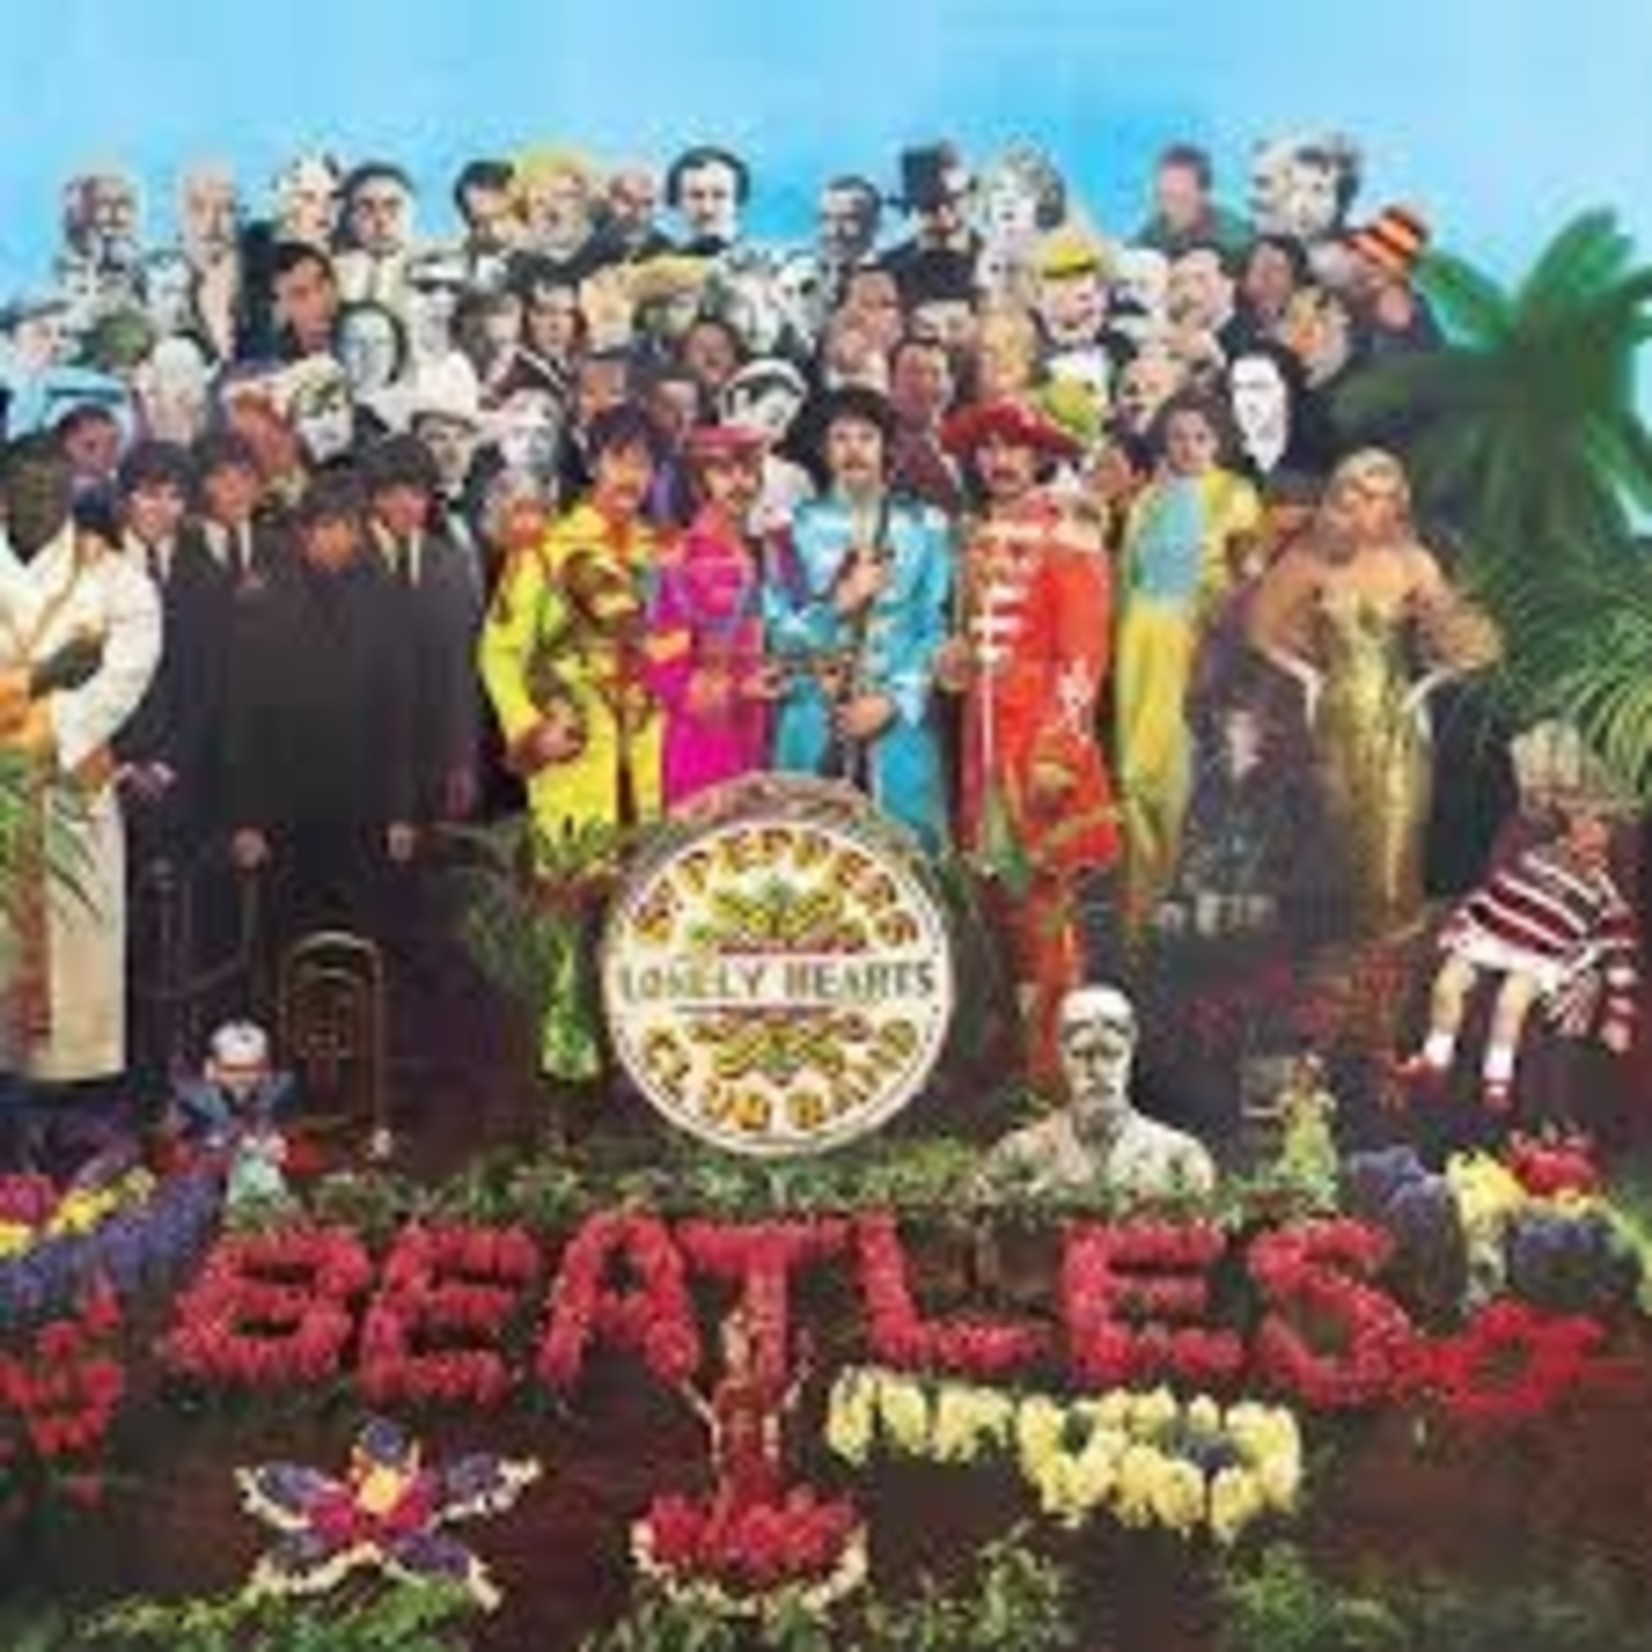 Vinyl The Beatles - Sgt. Peppers Lonely Hearts Club Band